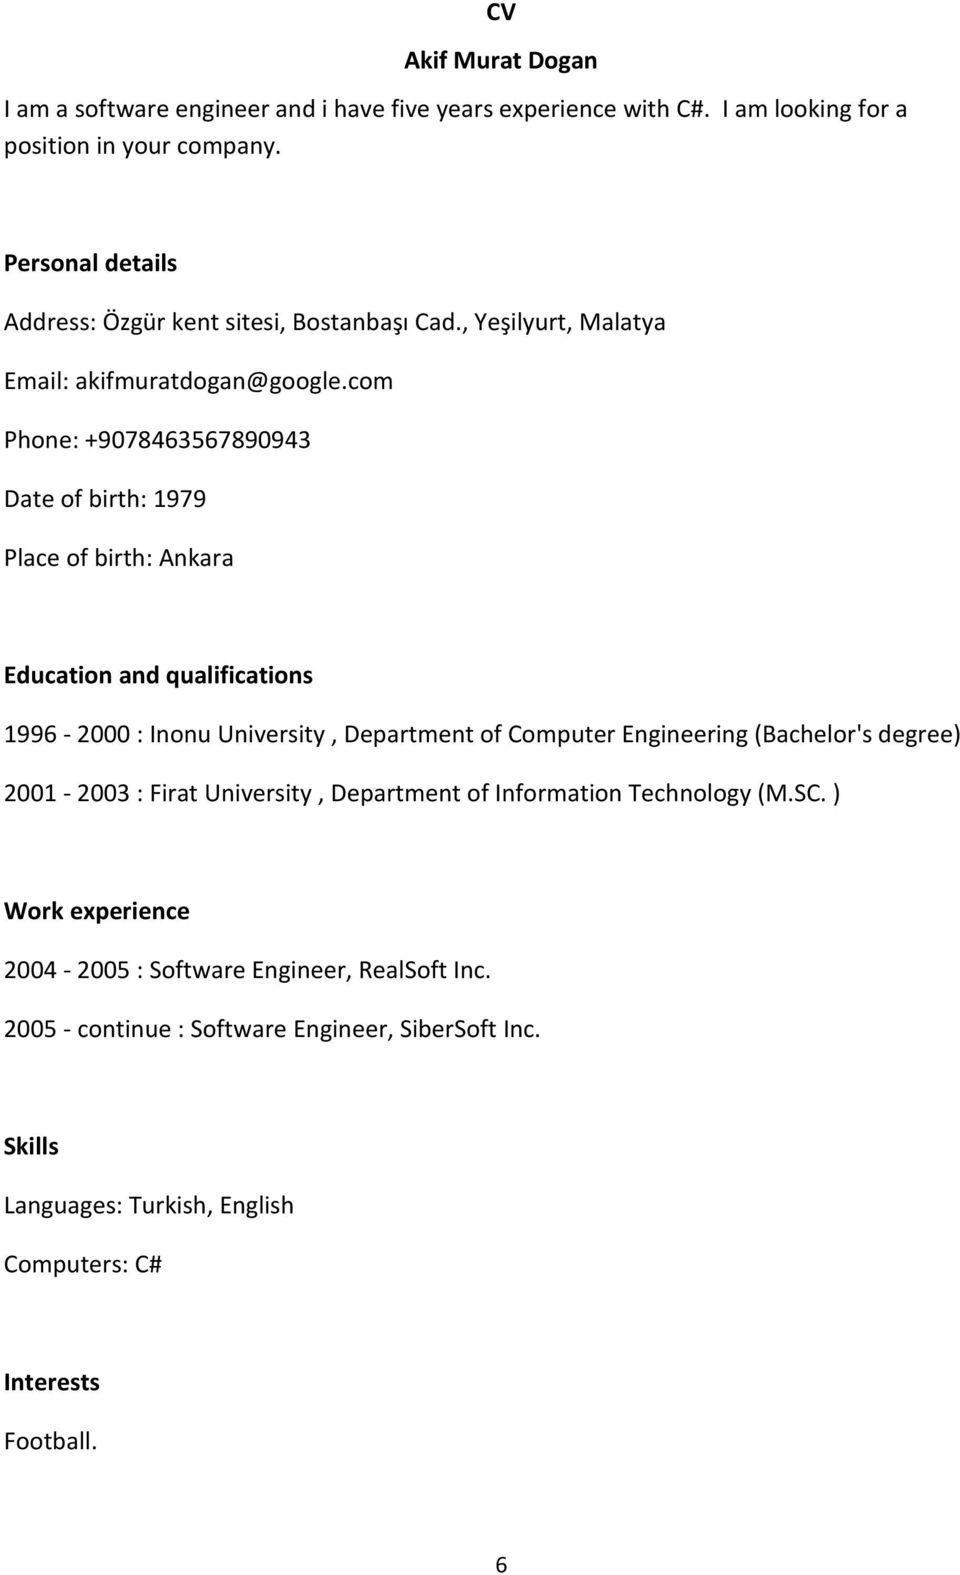 com Phone: +9078463567890943 Date of birth: 1979 Place of birth: Ankara Education and qualifications 1996-2000 : Inonu University, Department of Computer Engineering